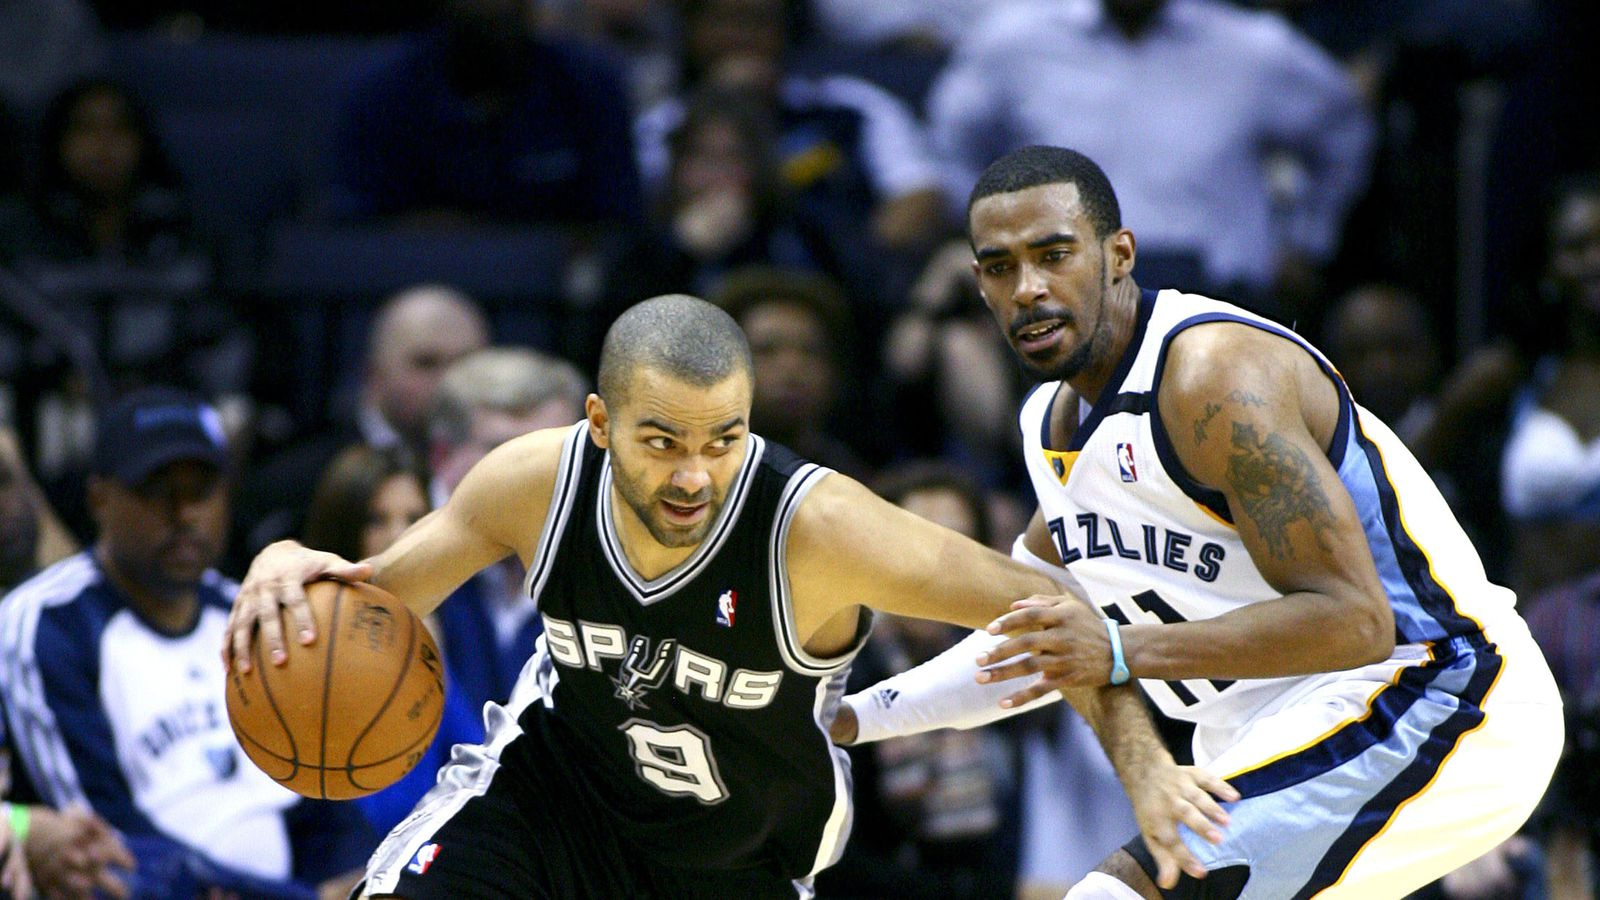 NBA Playoffs 2013: Highlights from the Spurs' Game 4 finale vs. the Grizzlies - SBNation.com